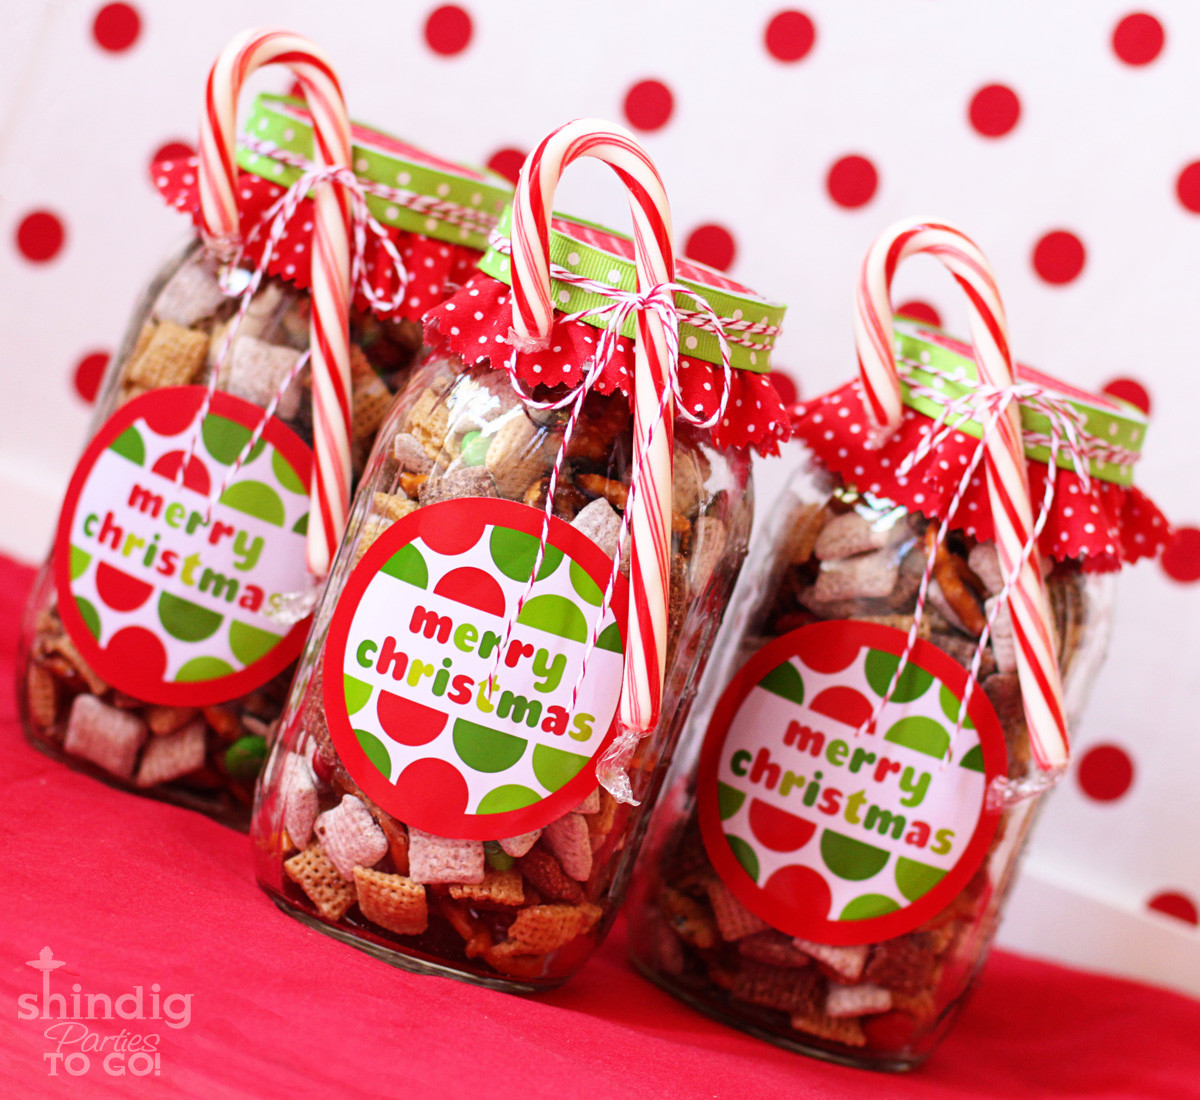 Candy Gifts For Christmas  How To Make Handmade Chex Mix Holiday Gifts & Bonus Free